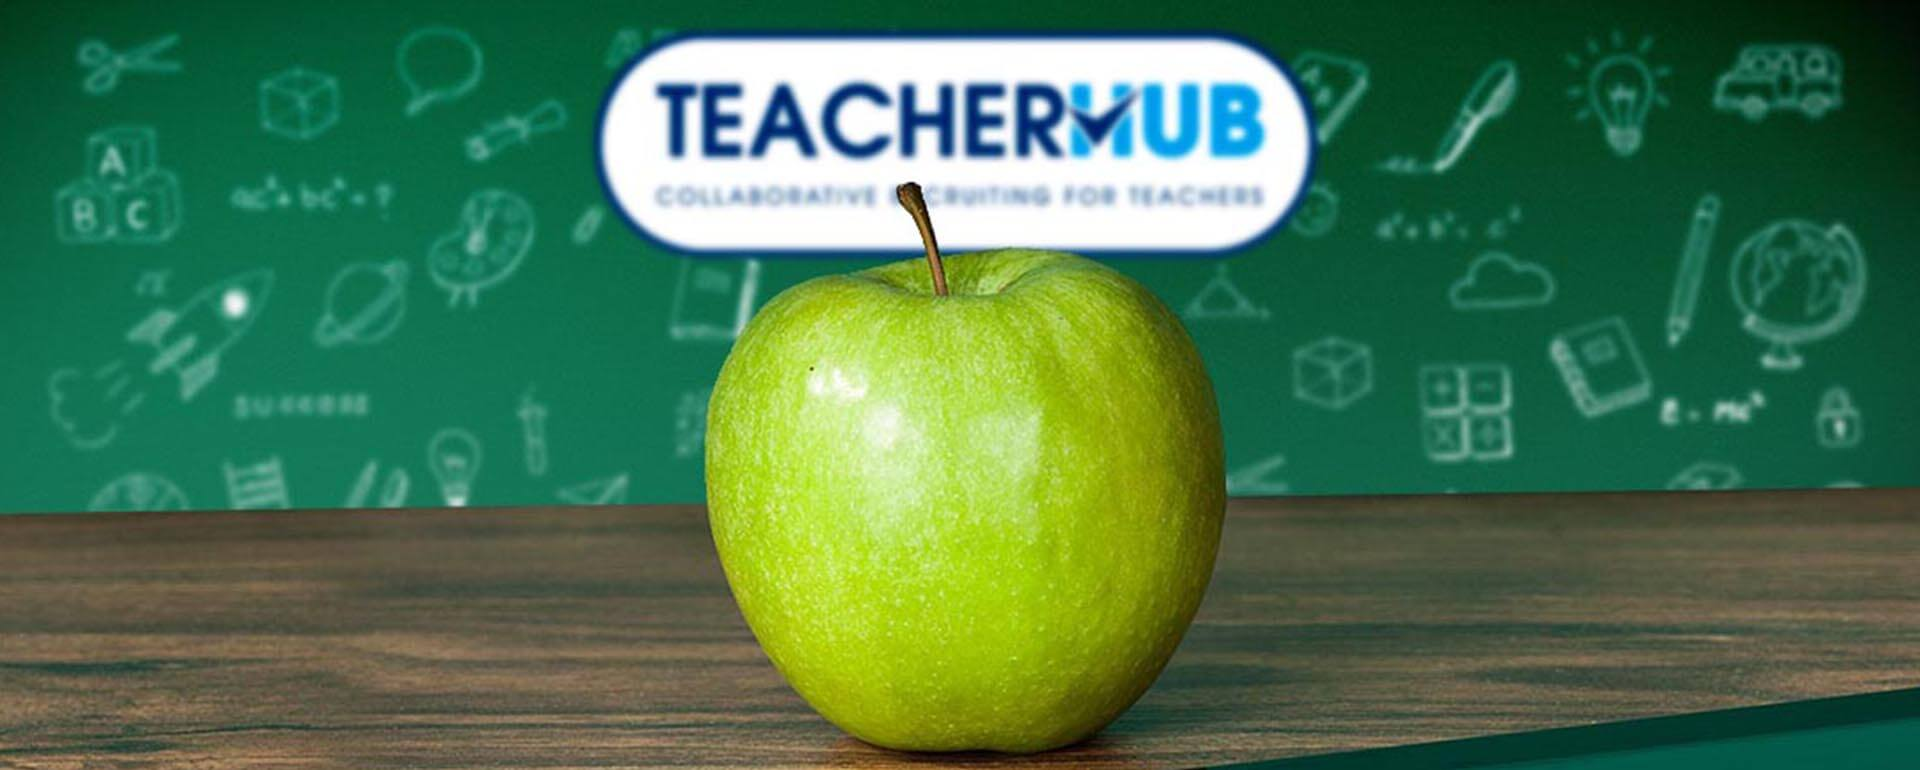 TeacherHub Top of the Class